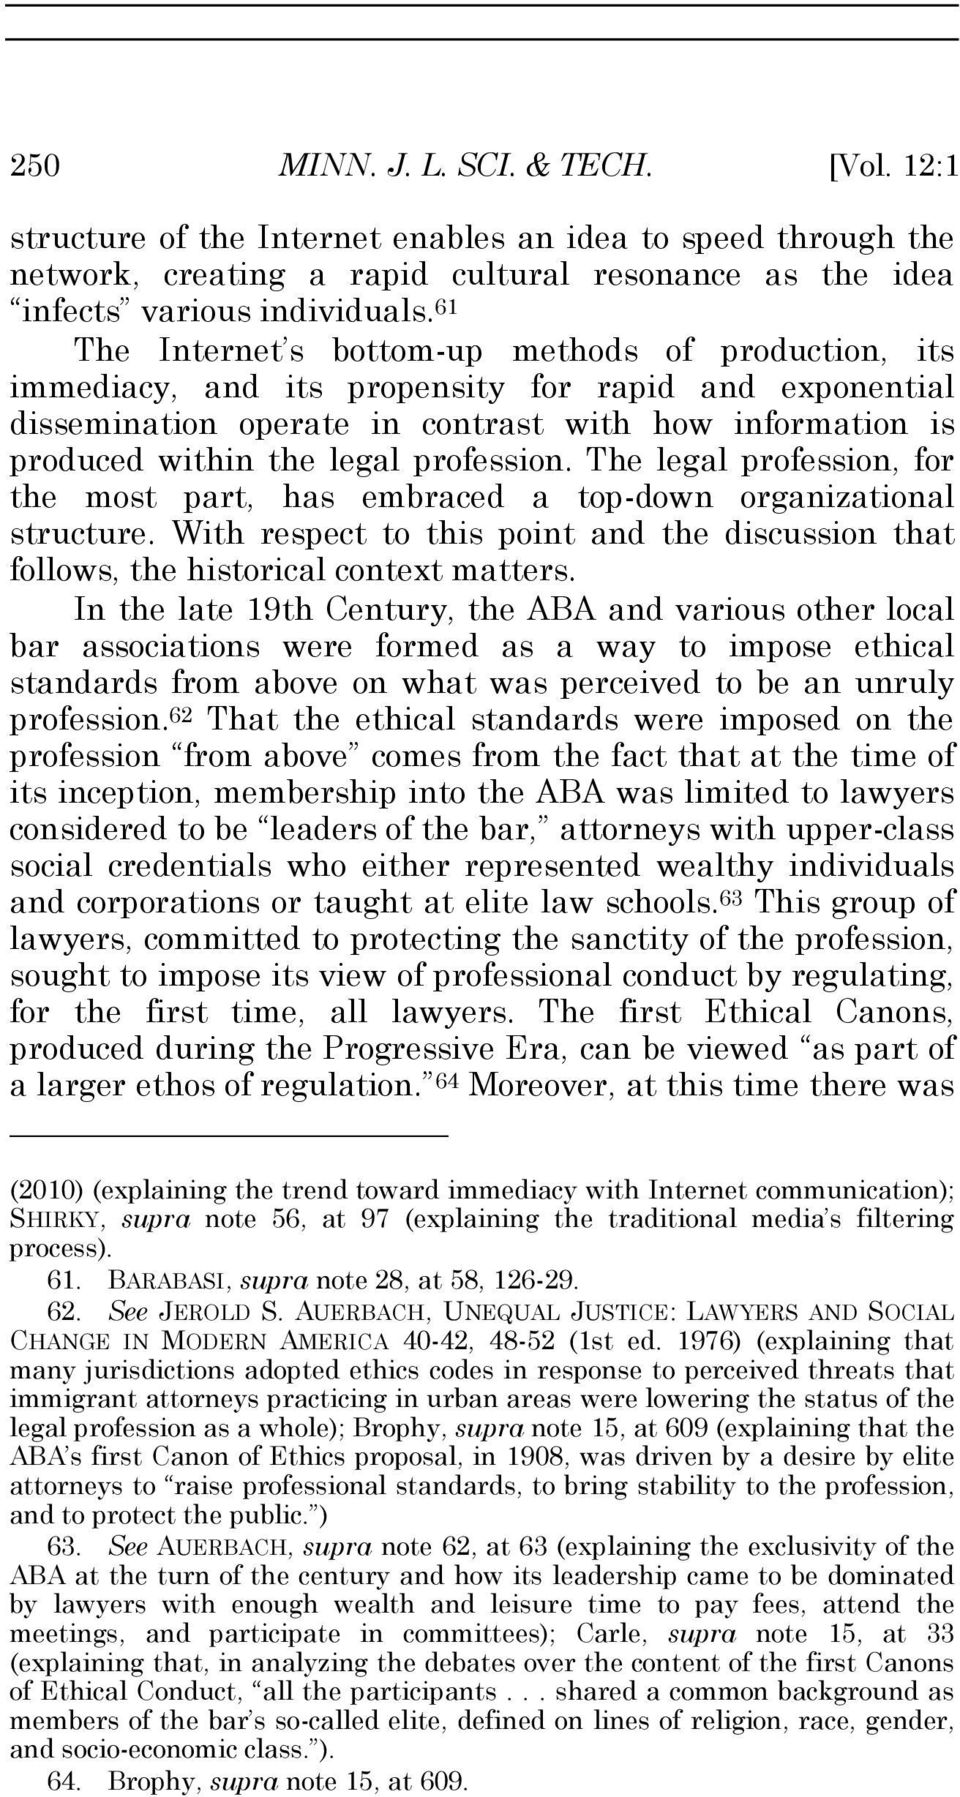 profession. The legal profession, for the most part, has embraced a top-down organizational structure. With respect to this point and the discussion that follows, the historical context matters.